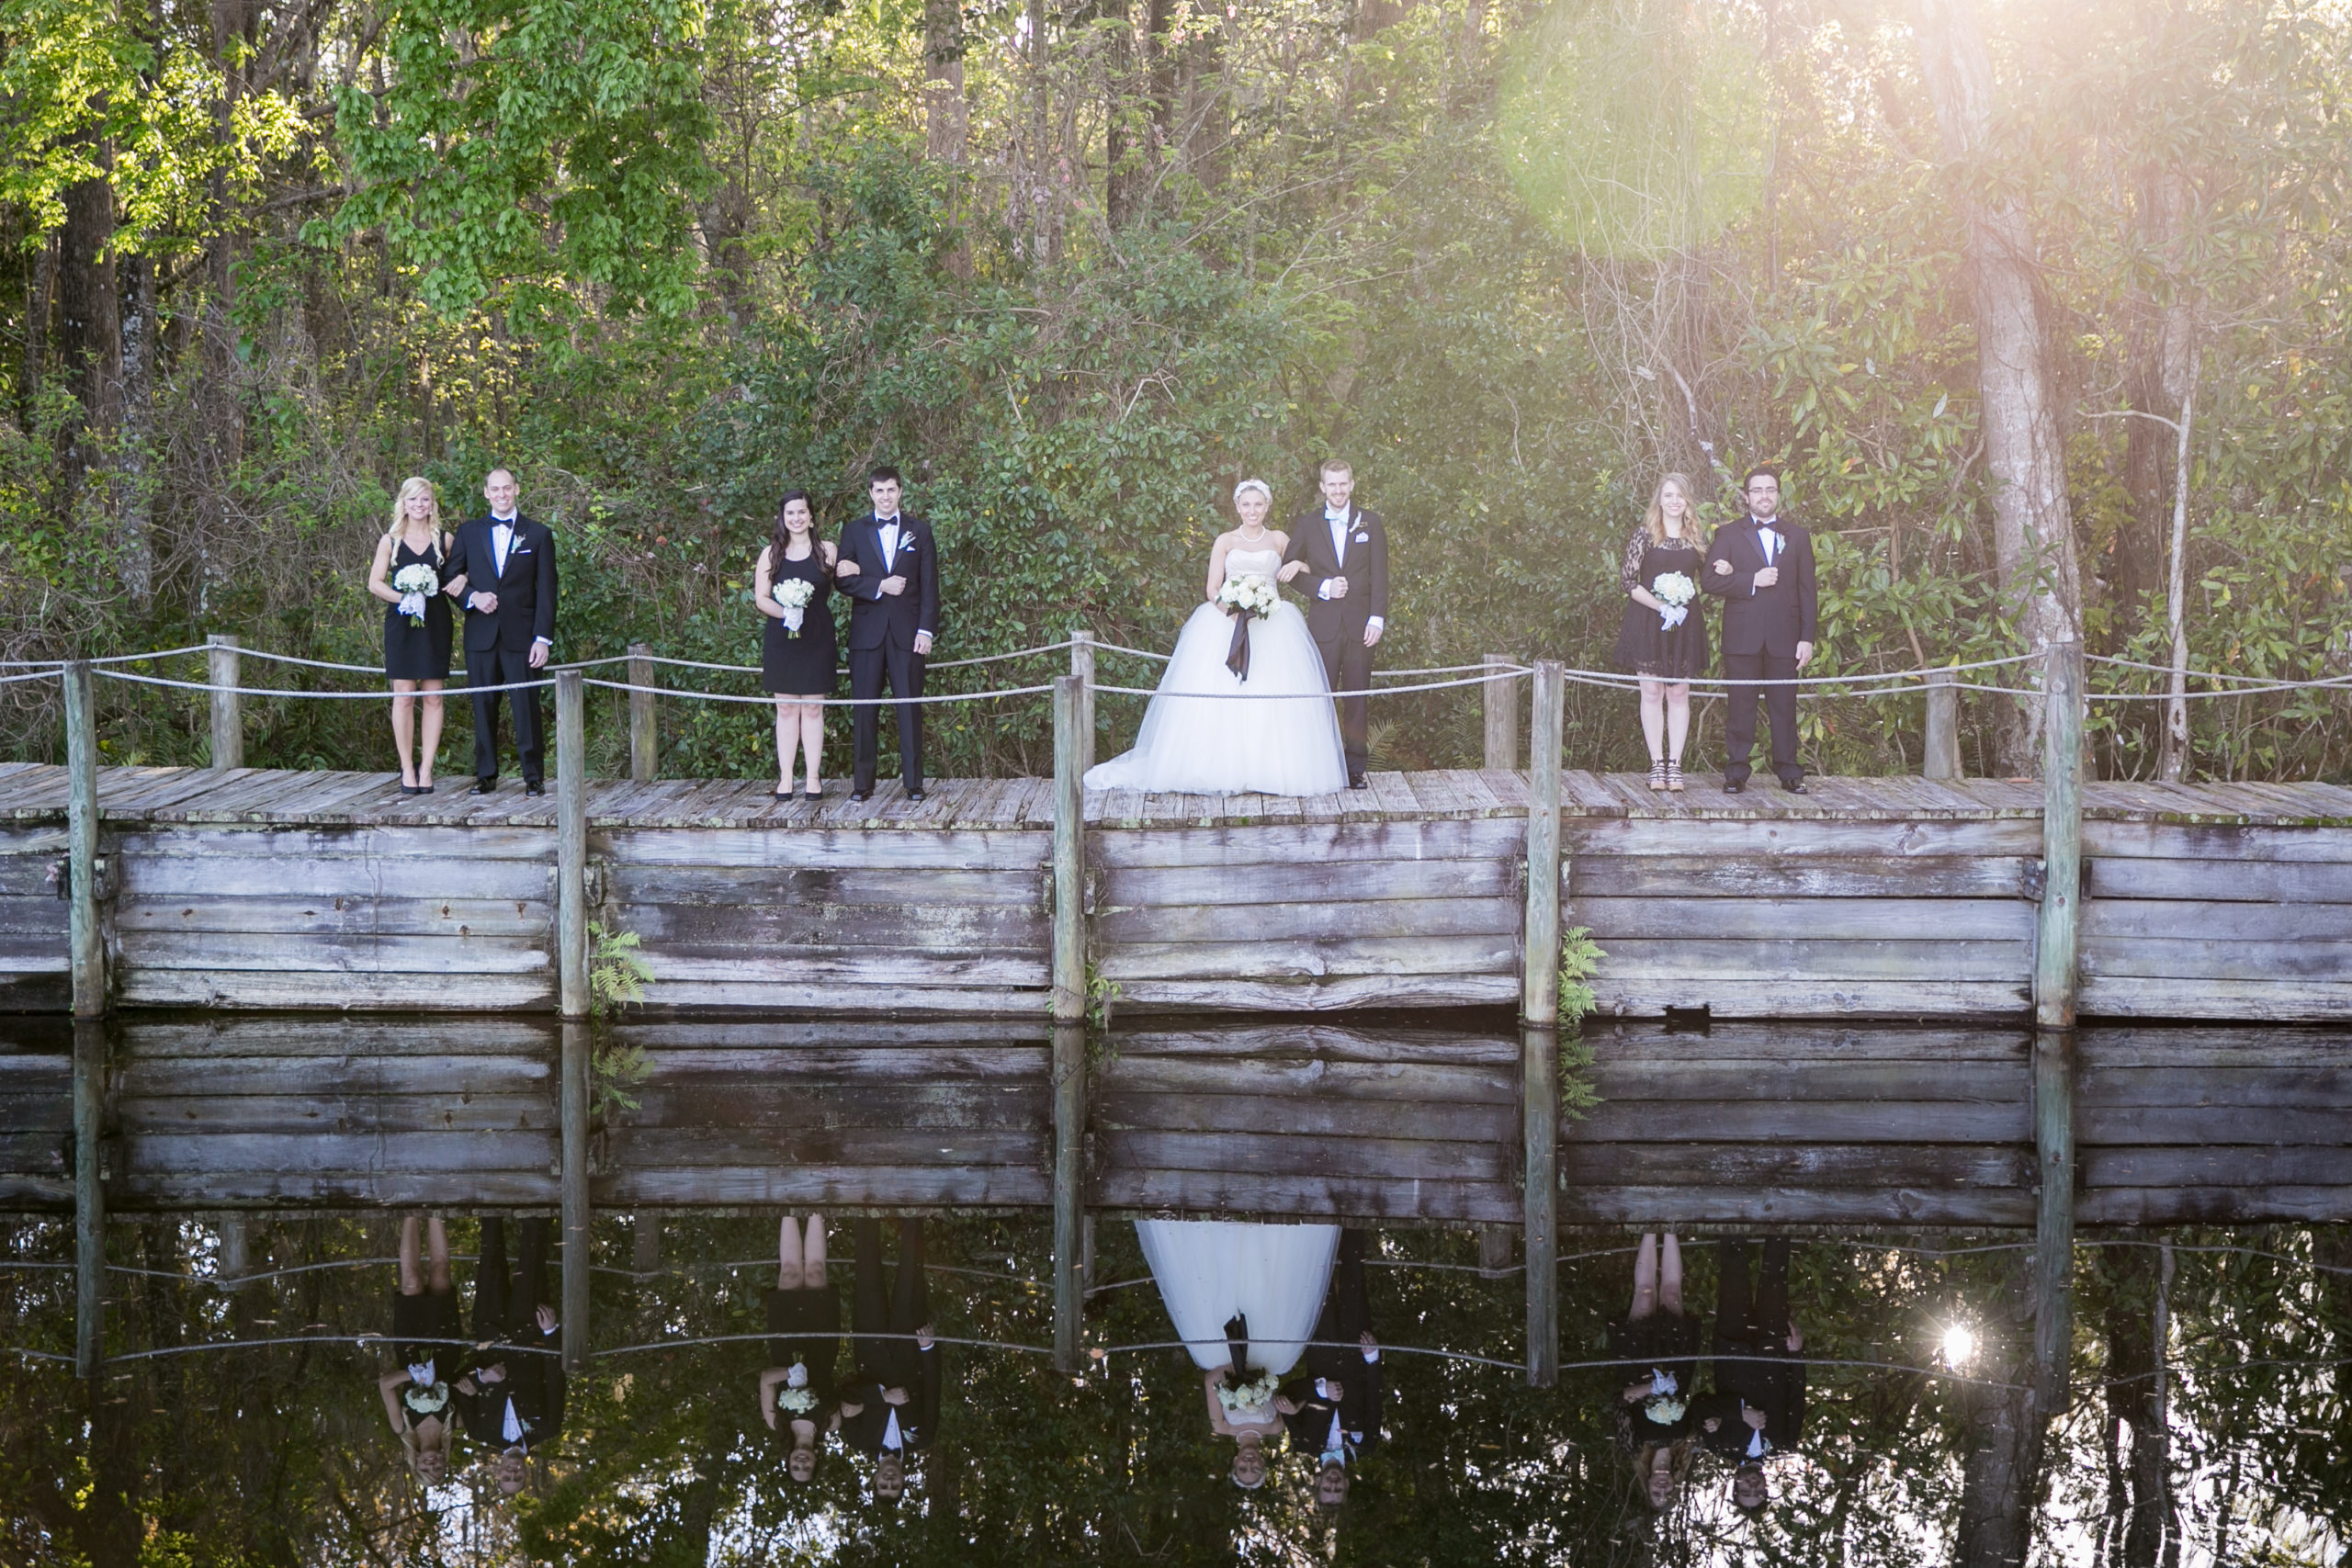 Bride and Groom standing on bridge with reflections in the water